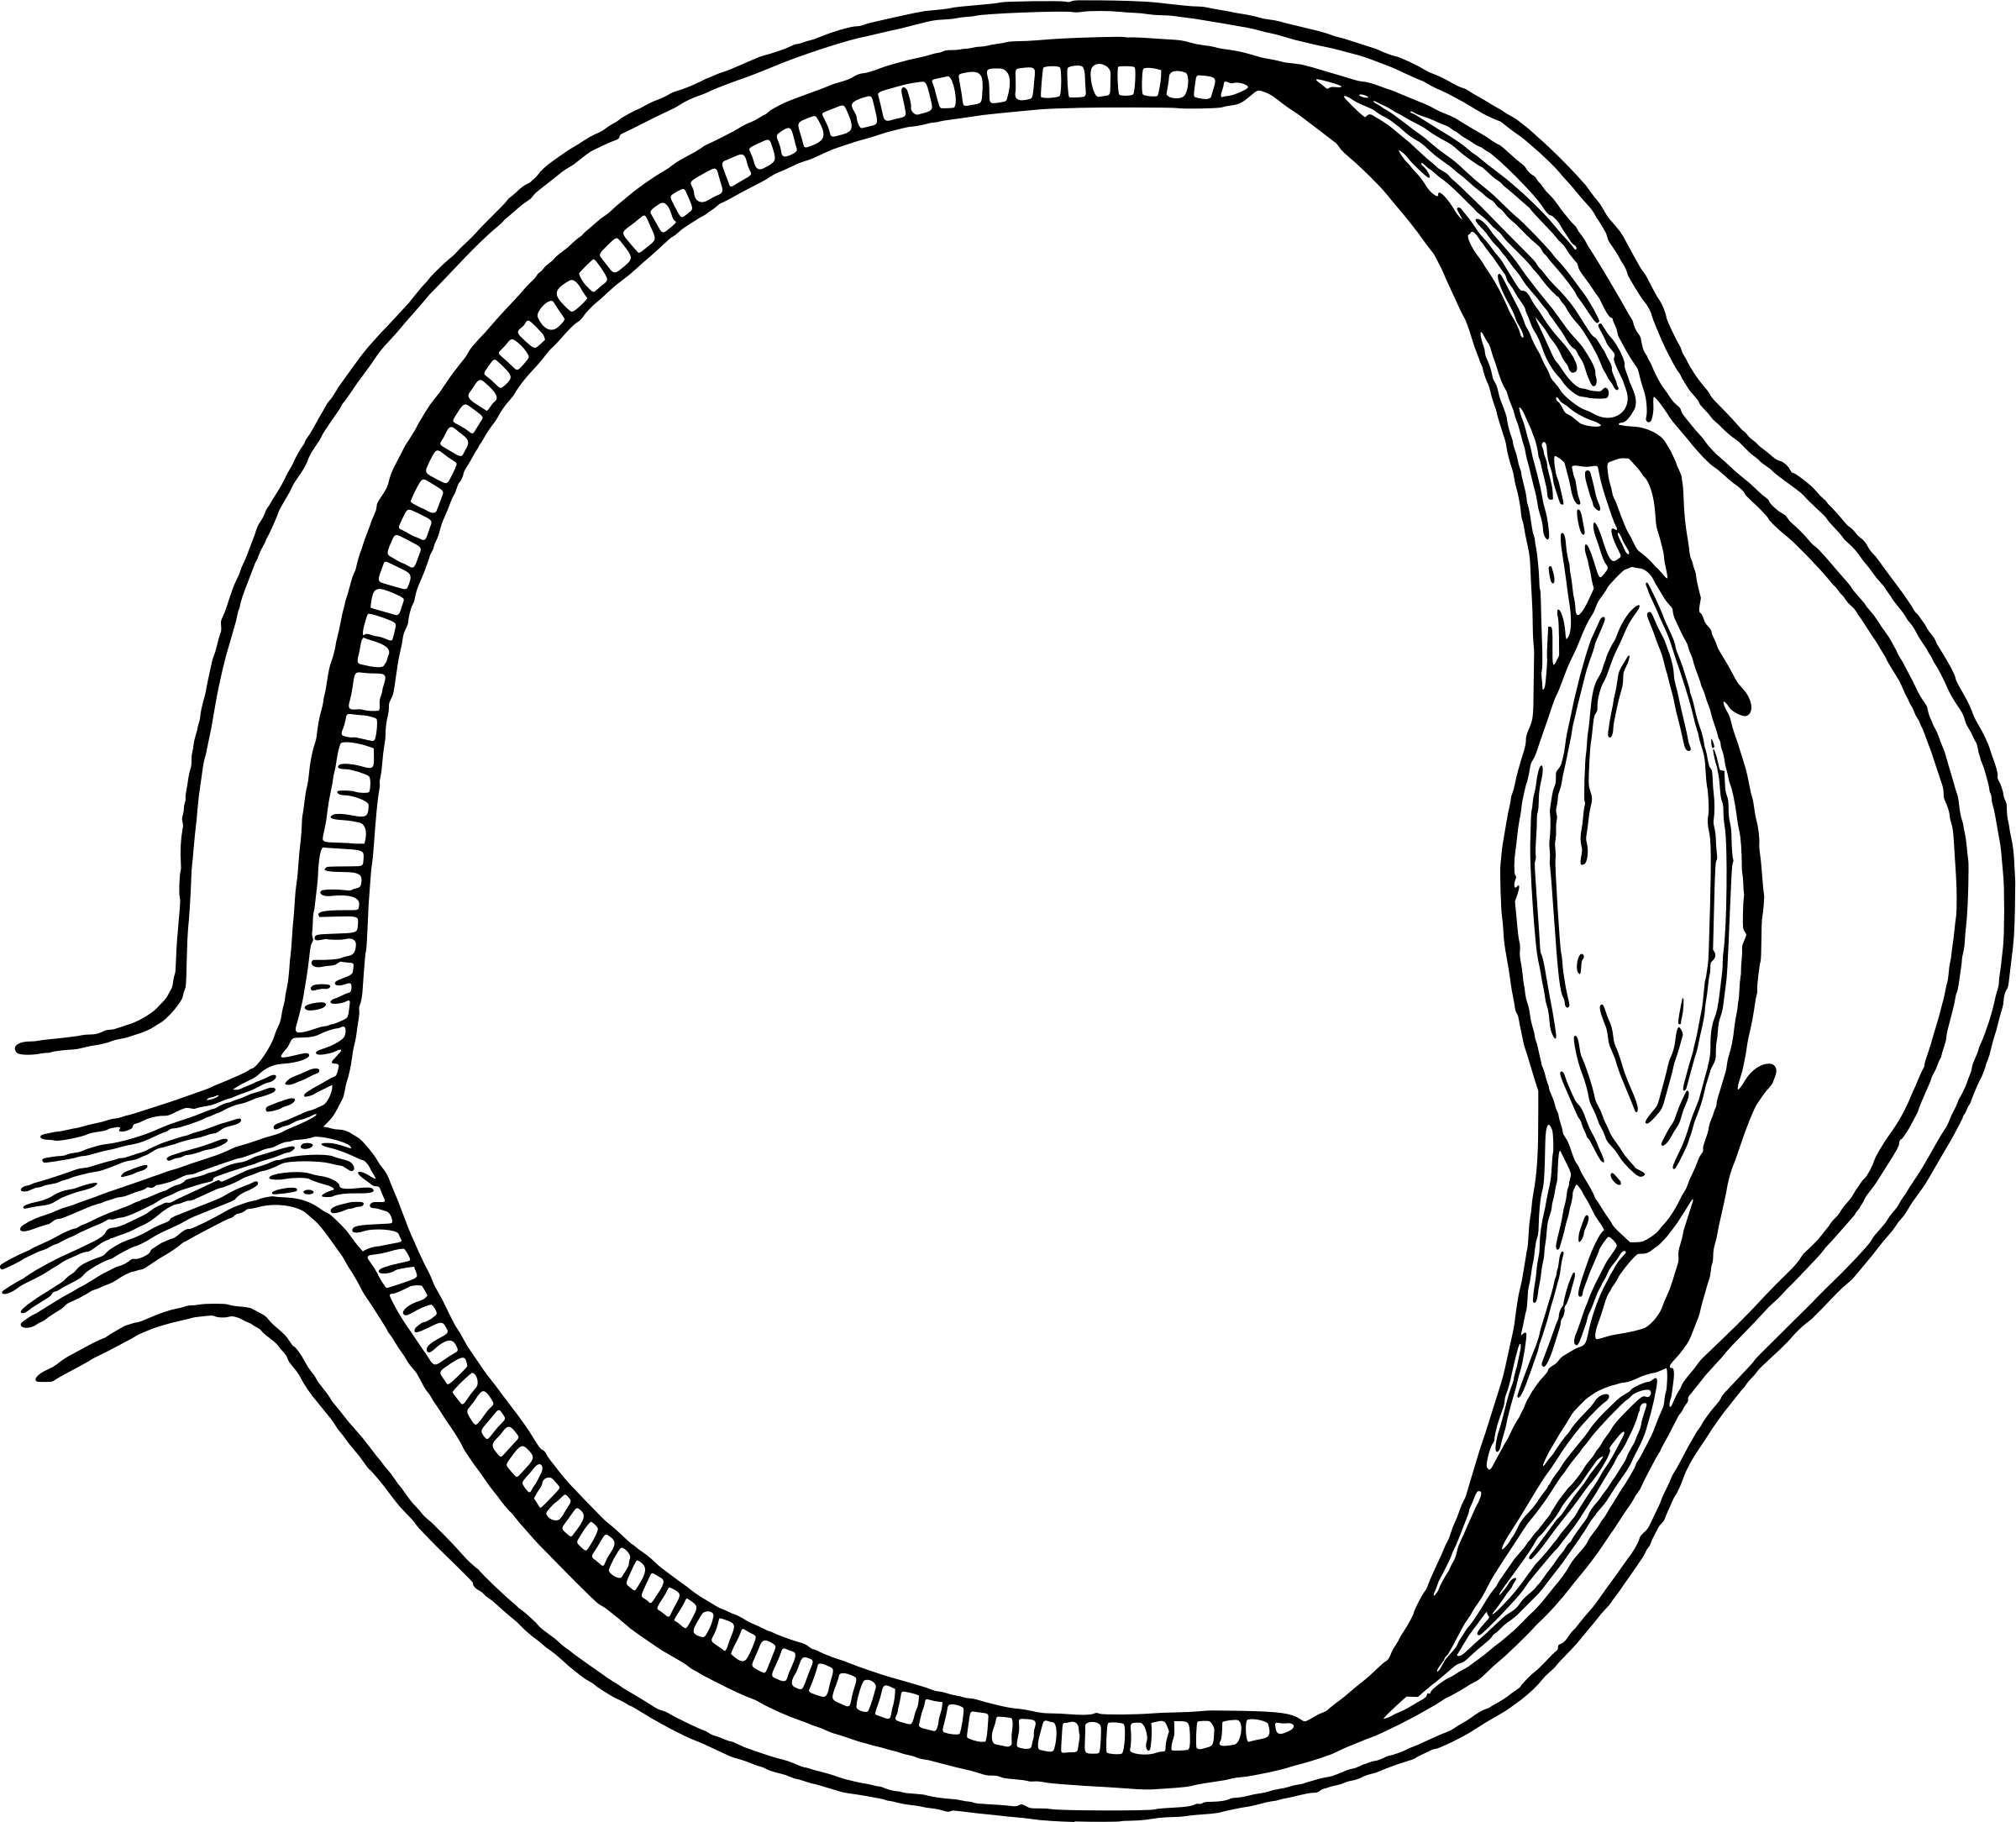 Eyeball Anatomy Vector Clipart Image